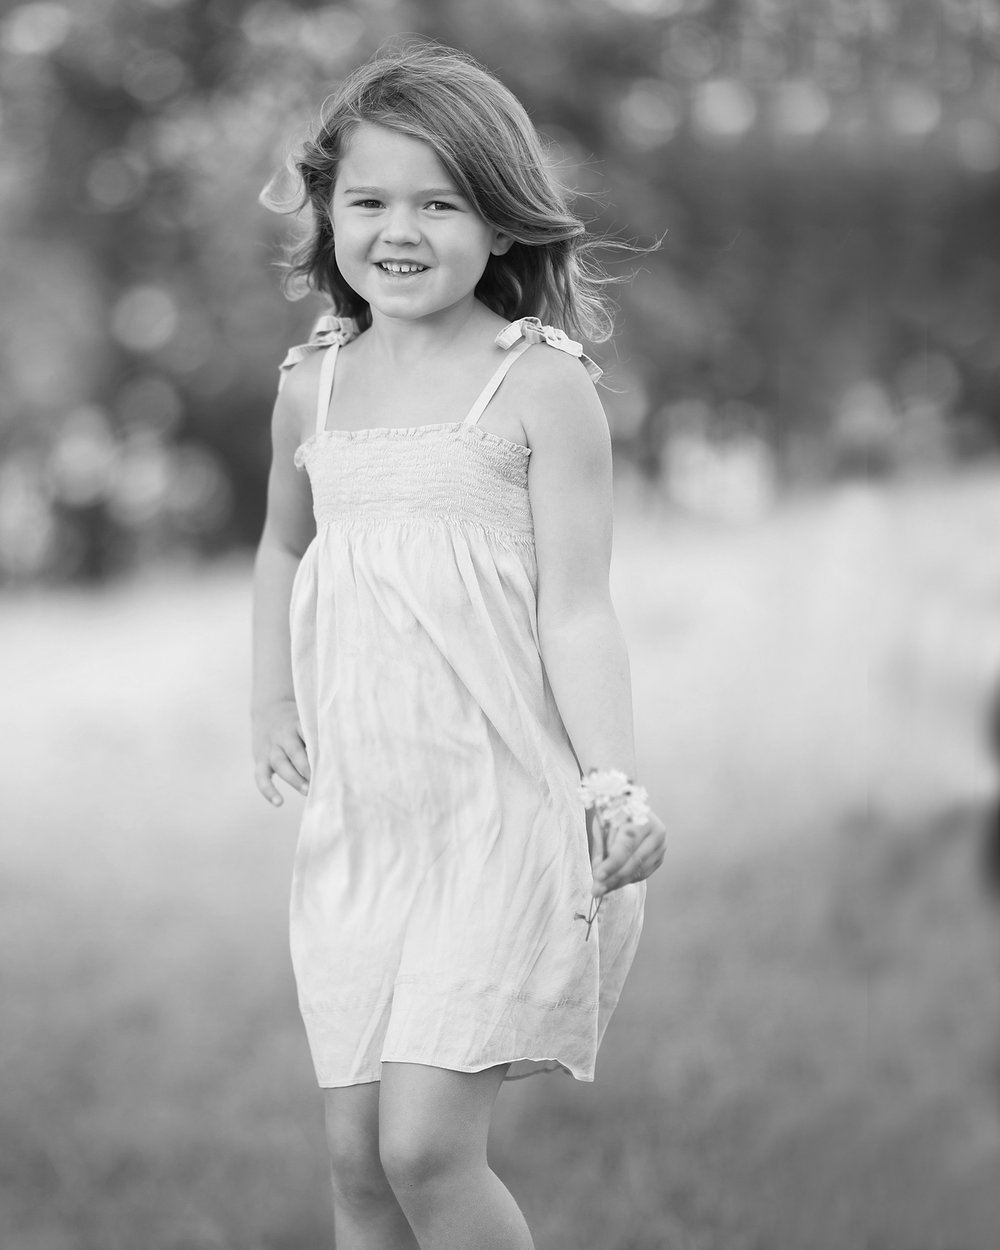 Maureen_Ford_Photography_Kids_0004.JPG